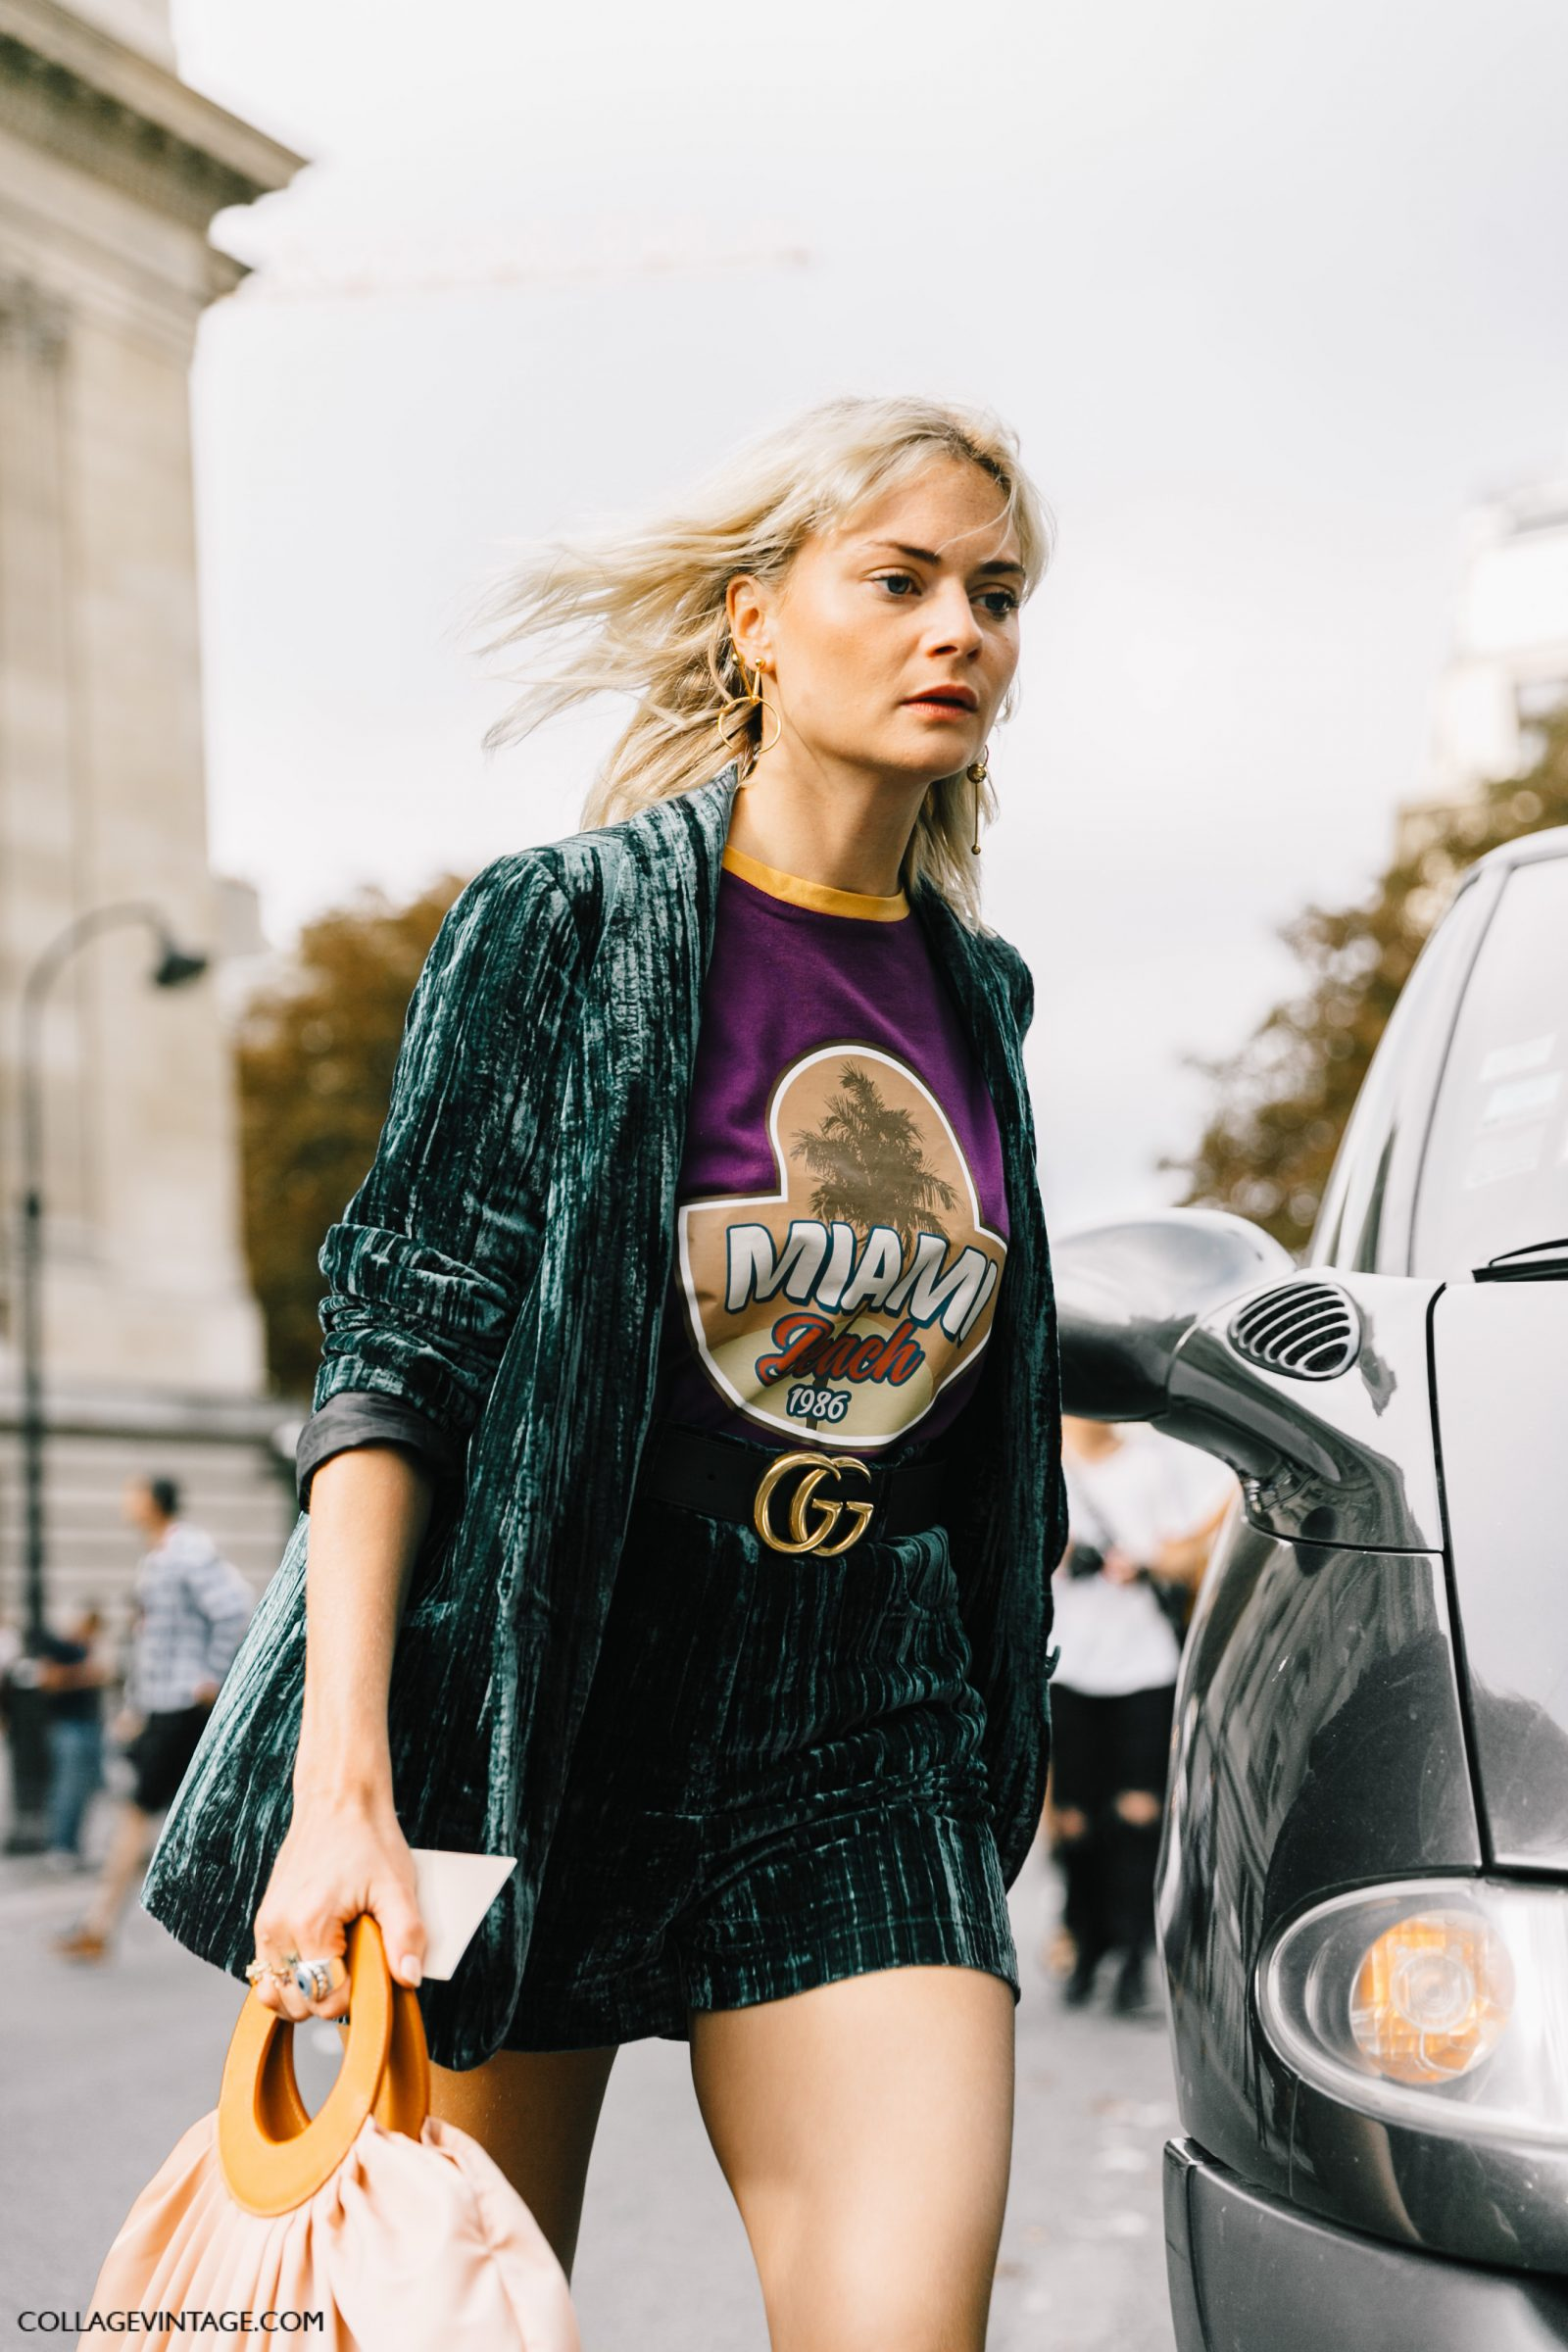 pfw-paris_fashion_week_ss17-street_style-outfits-collage_vintage-chloe-carven-balmain-barbara_bui-35